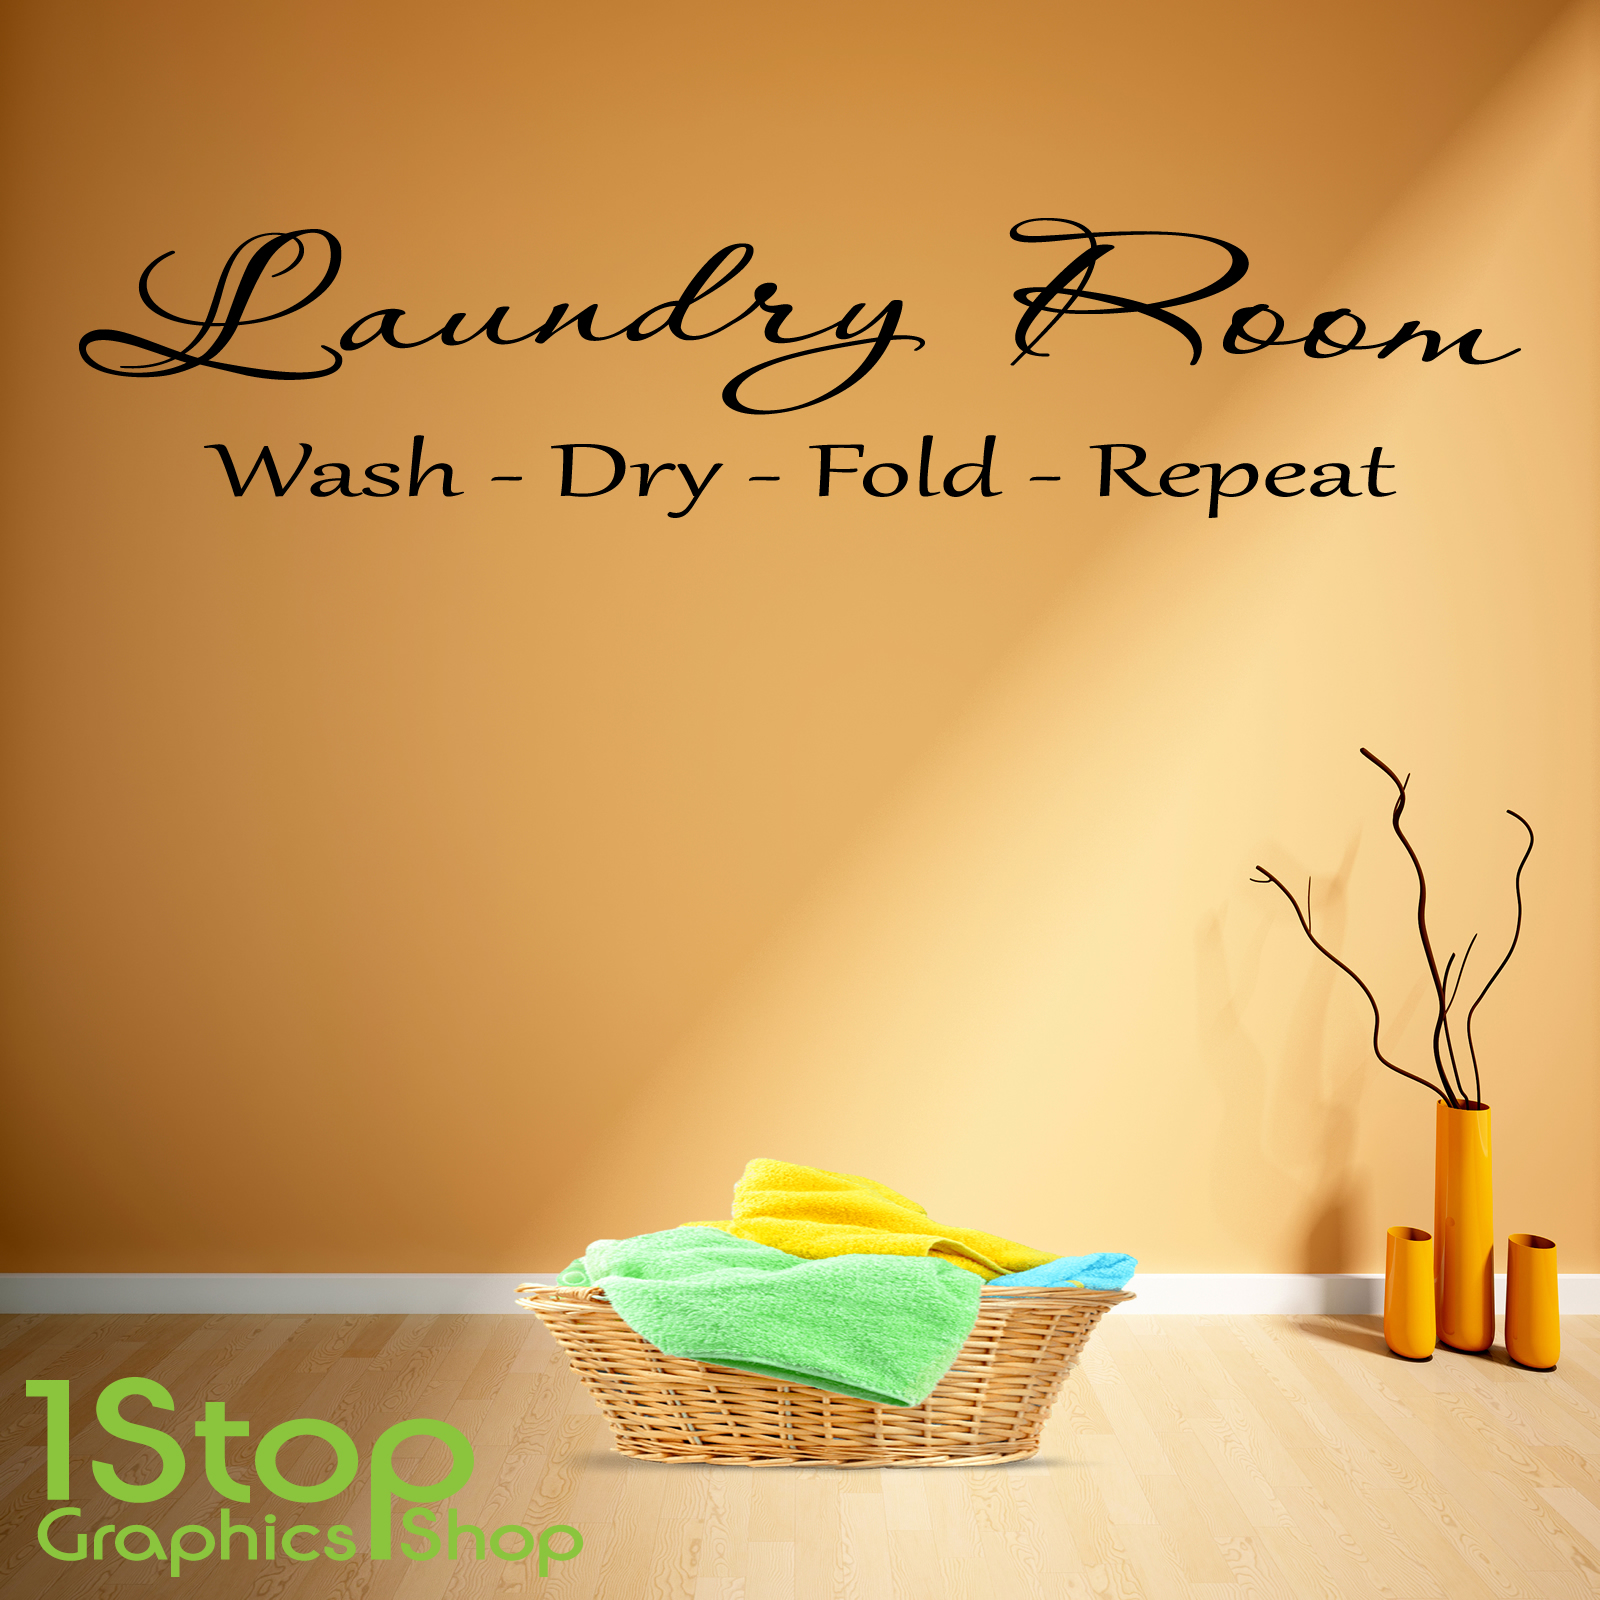 LAUNDRY ROOM WALL STICKER QUOTE - KITCHEN HEART HOME WALL ART DECAL ...